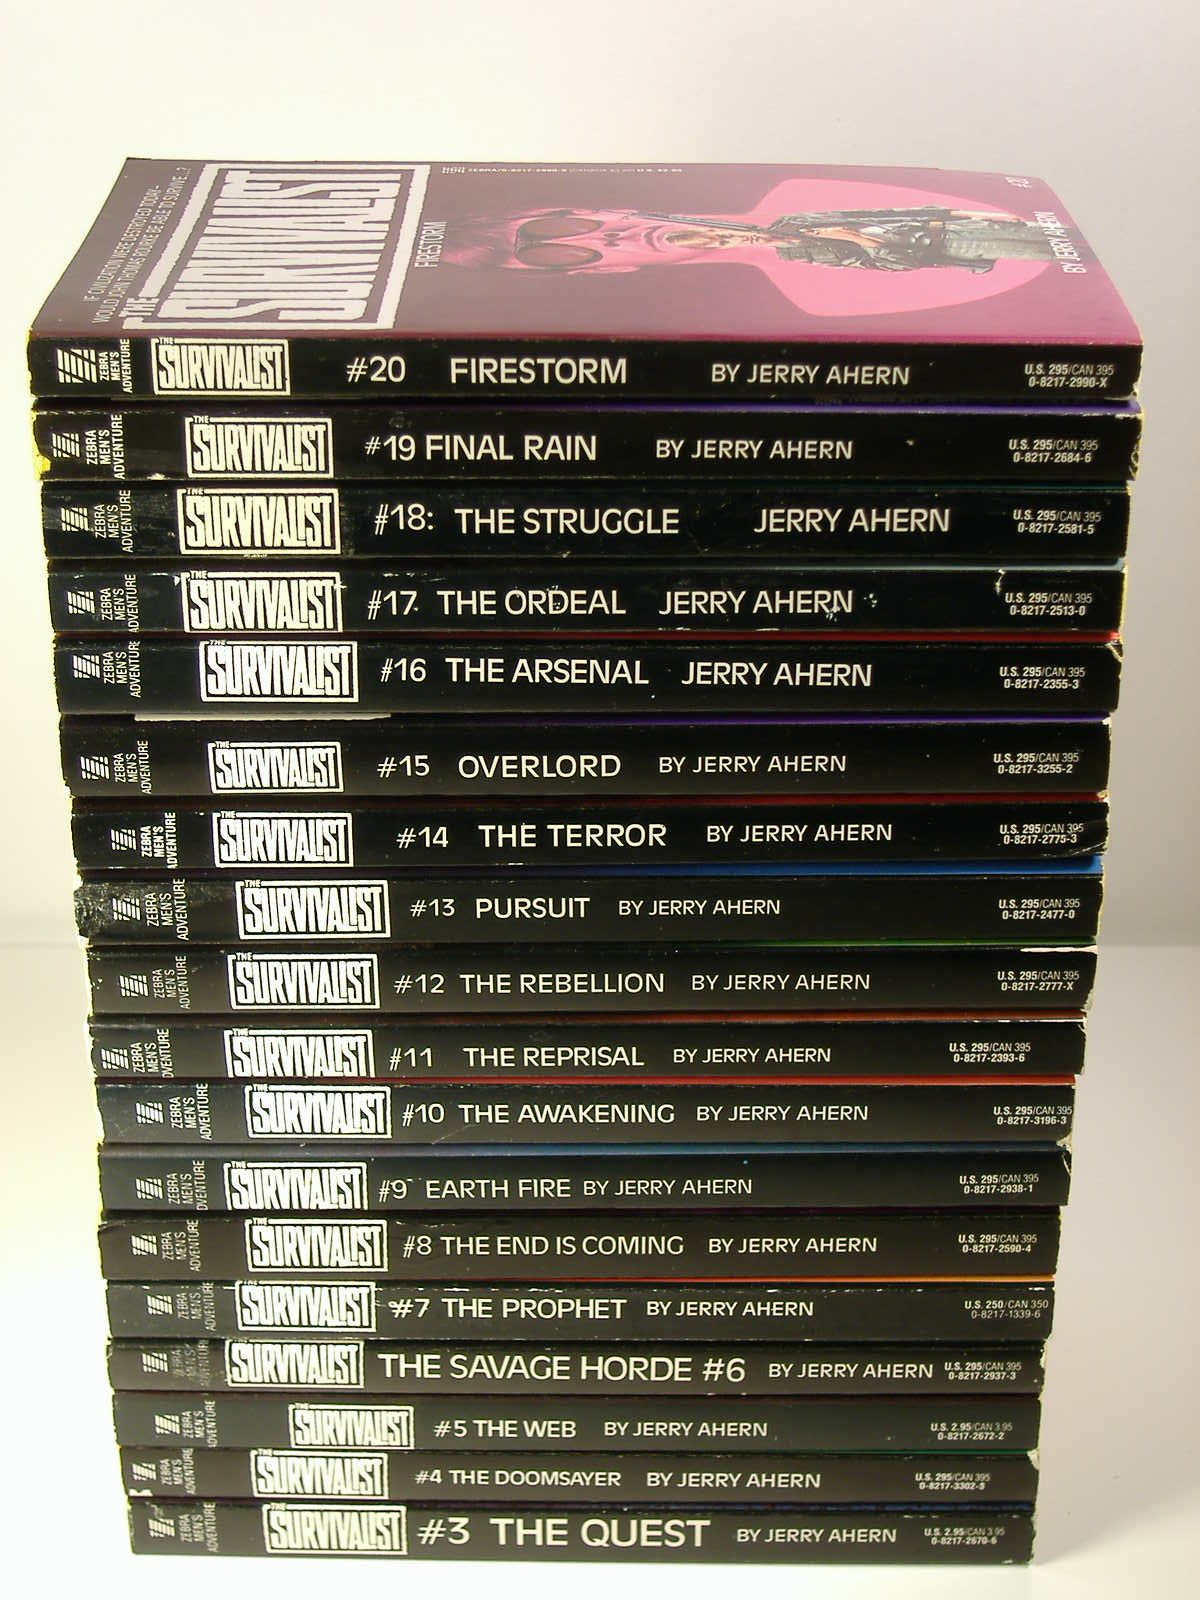 The Survivalist 18 volume set #3 thru #20 includes #3, #4, #5, #6, #7, #8,  #9, #10, #11, #12, #13, #14, #15, #16, #17, #18, #19, and #20: Ahern:  Amazon.com: ...